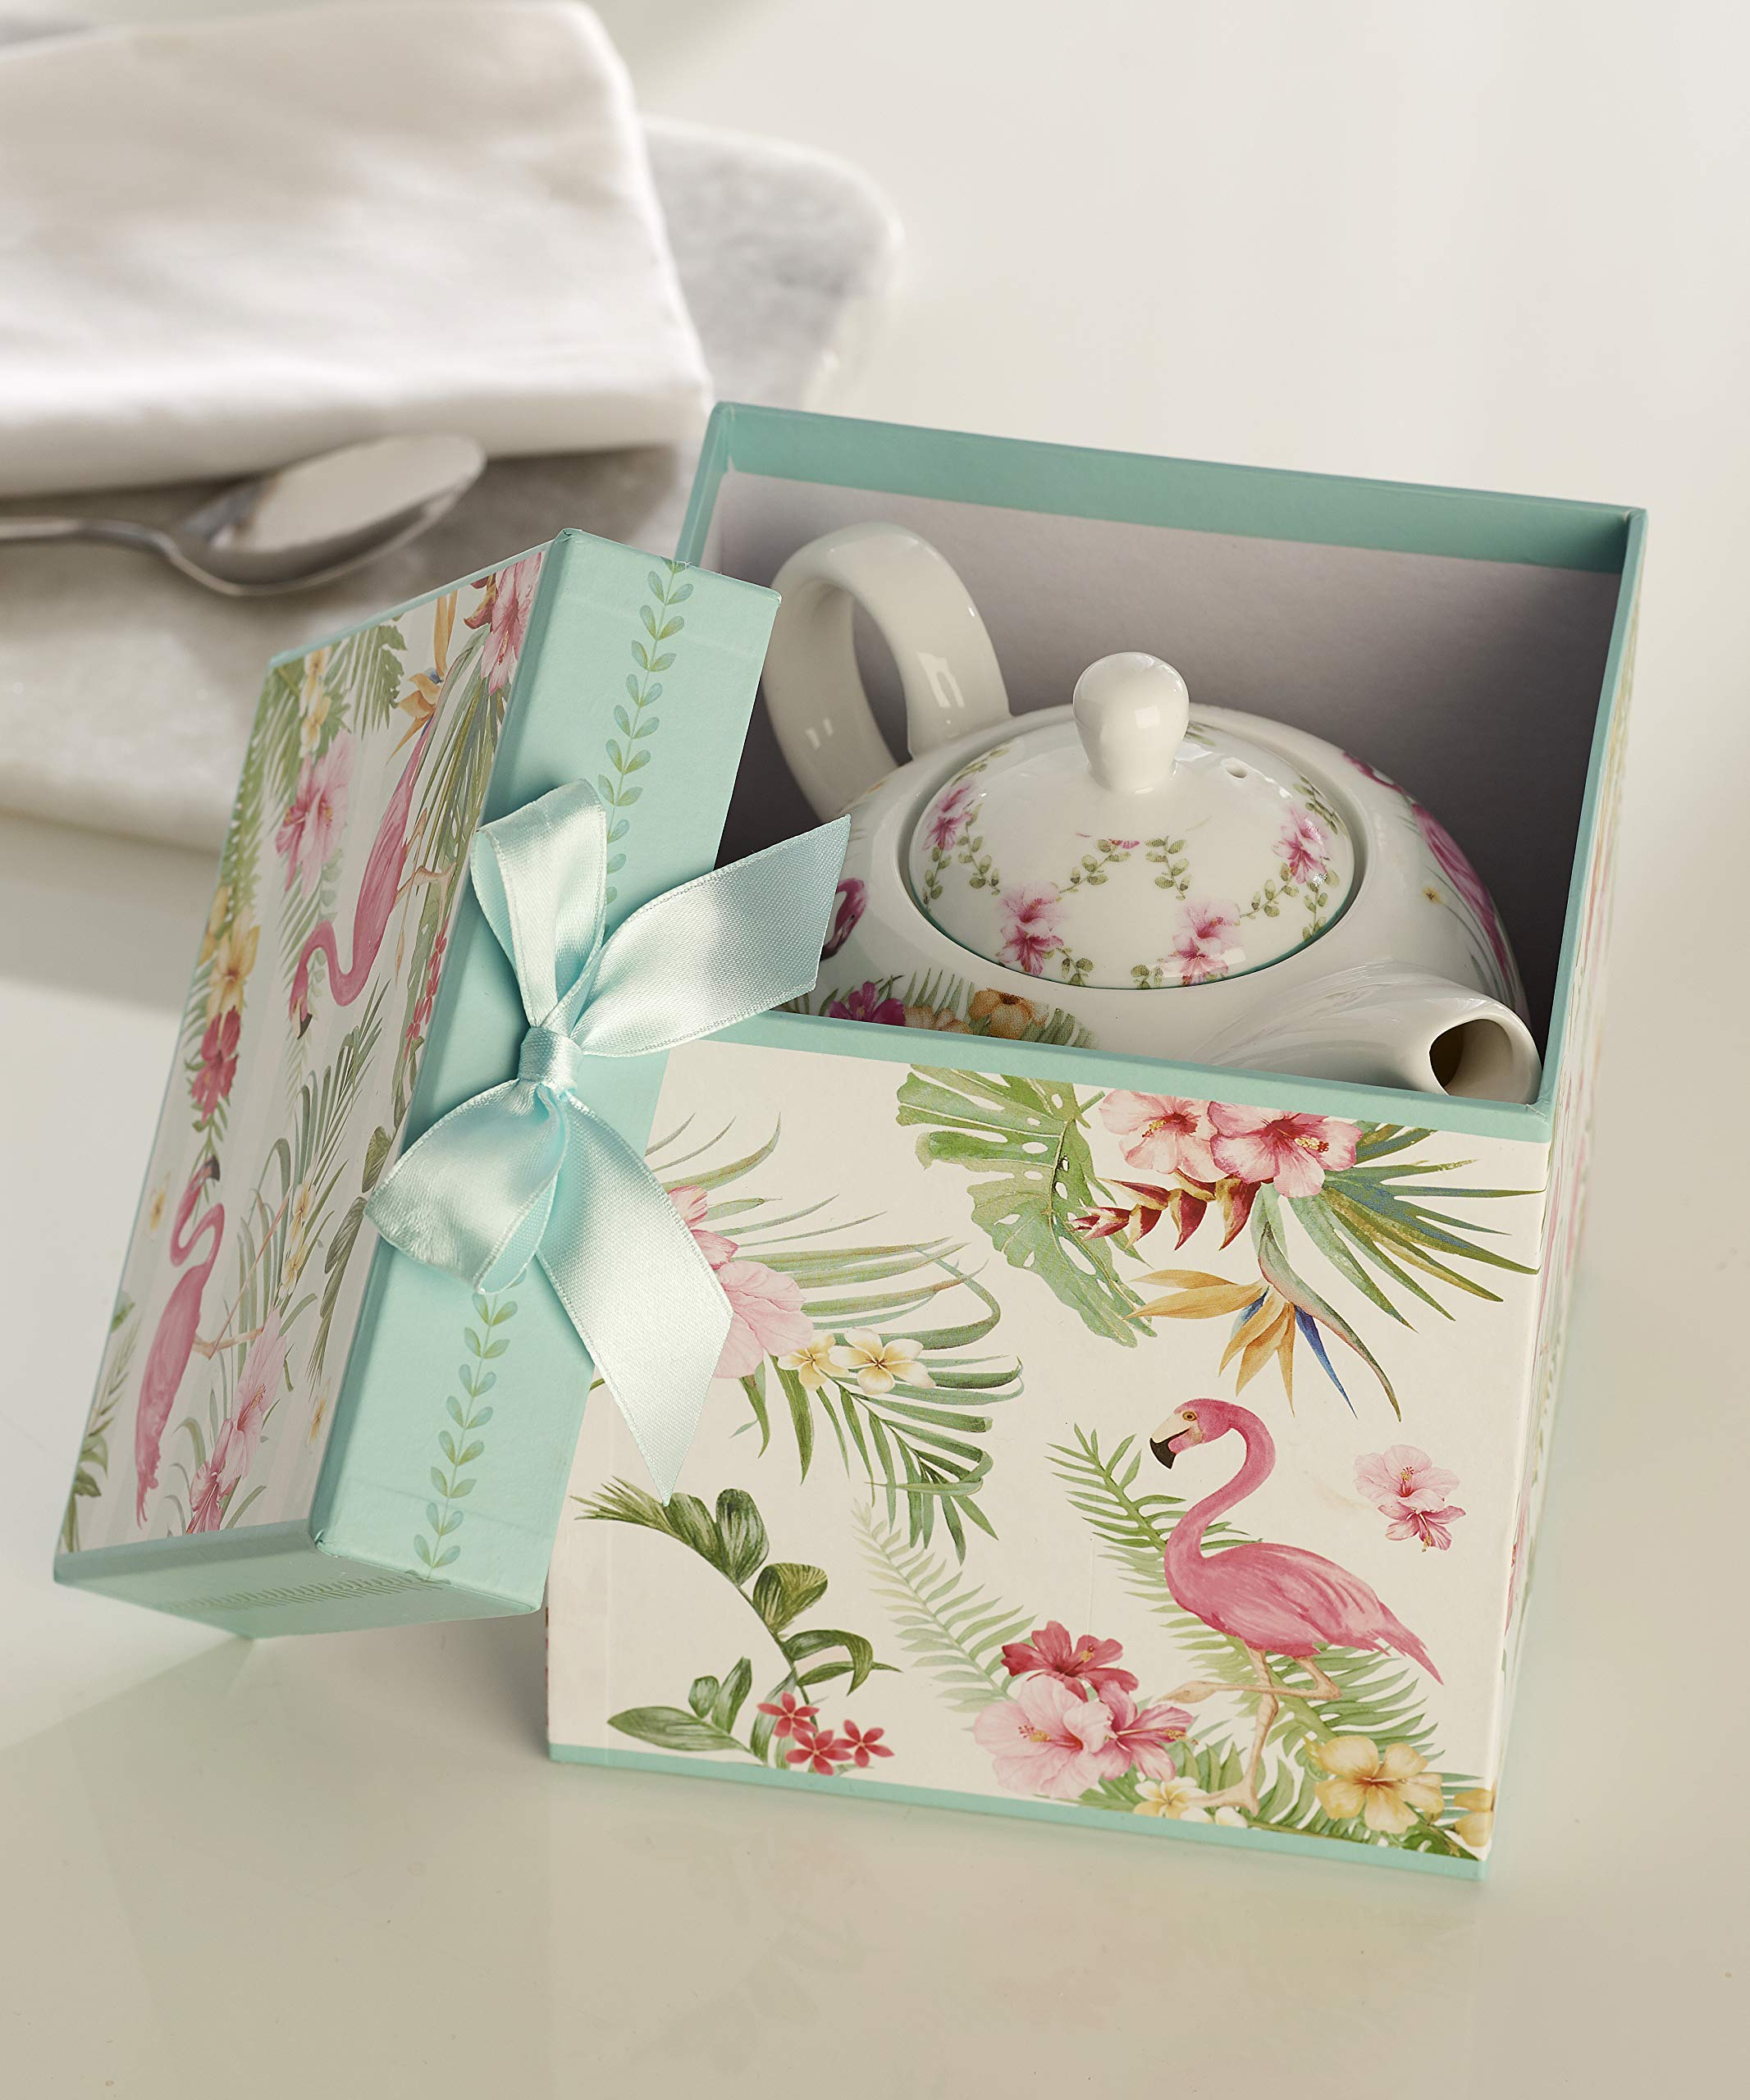 Giftcraft Bone China Tea Set for One in Gift Box, Flamingo Design by Giftcraft (Image #1)